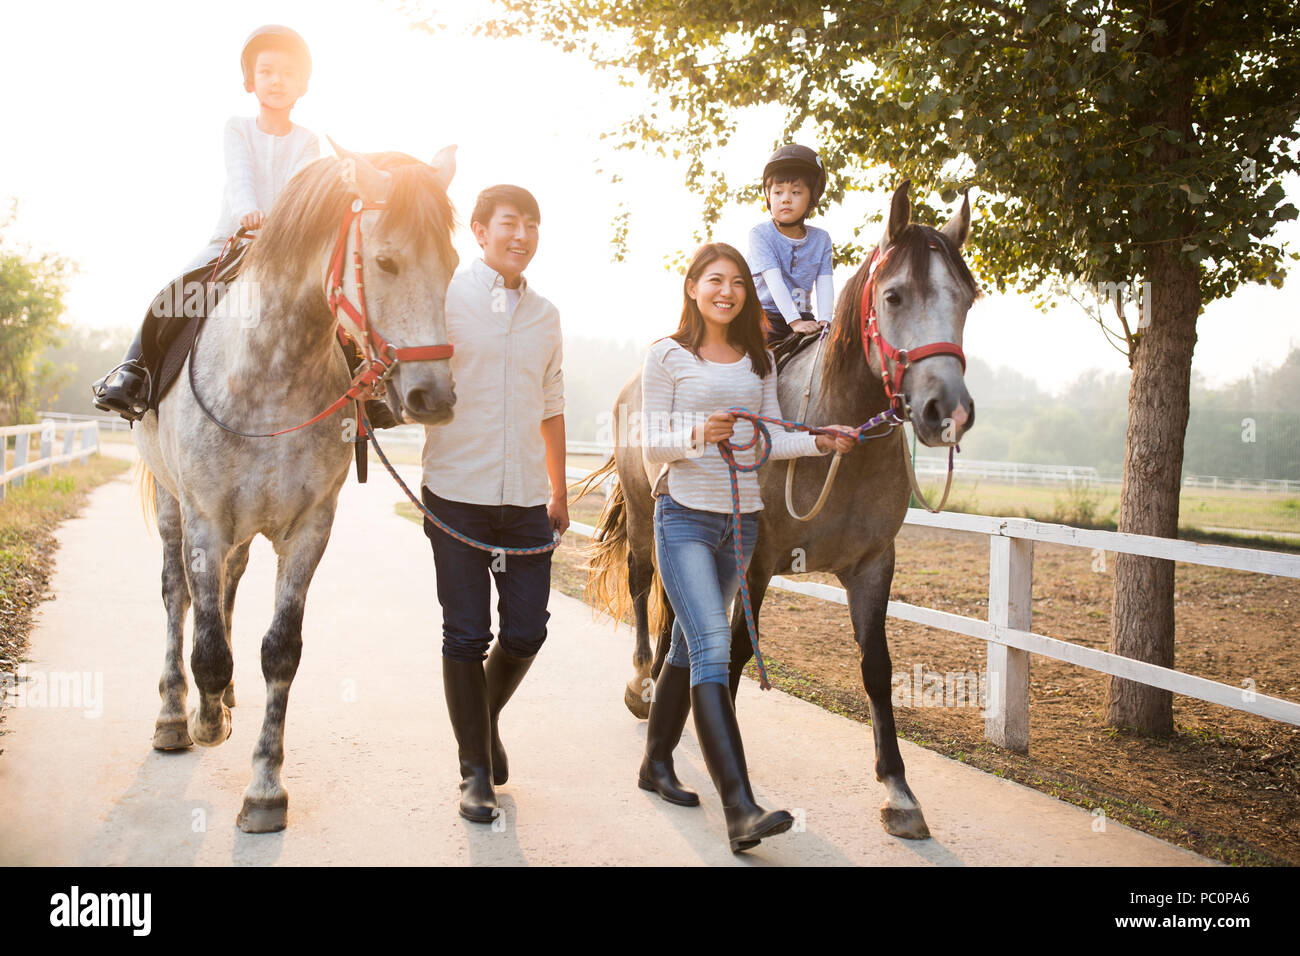 Cheerful young Chinese family riding horses Stock Photo